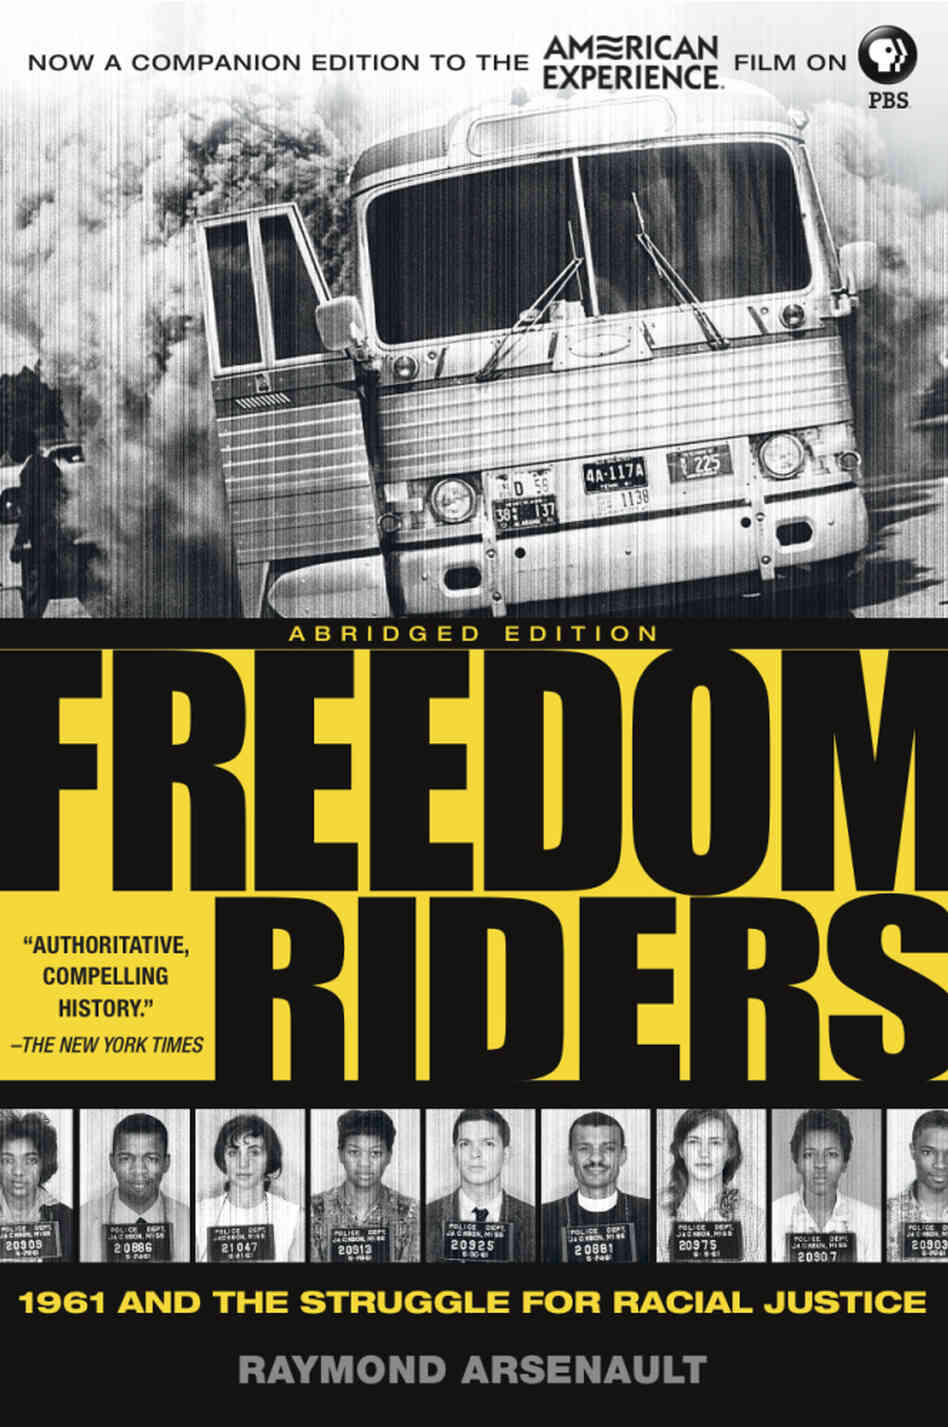 the freedom riders Freedom riders becky delp his 145 july 9, 2013 john dreier, phd freedom riders (bingimagescom, 2013) dear diary, may 1961 the freedom riders was supposed to be a nonviolent ride for african americans and white americans from washington to new orleans.